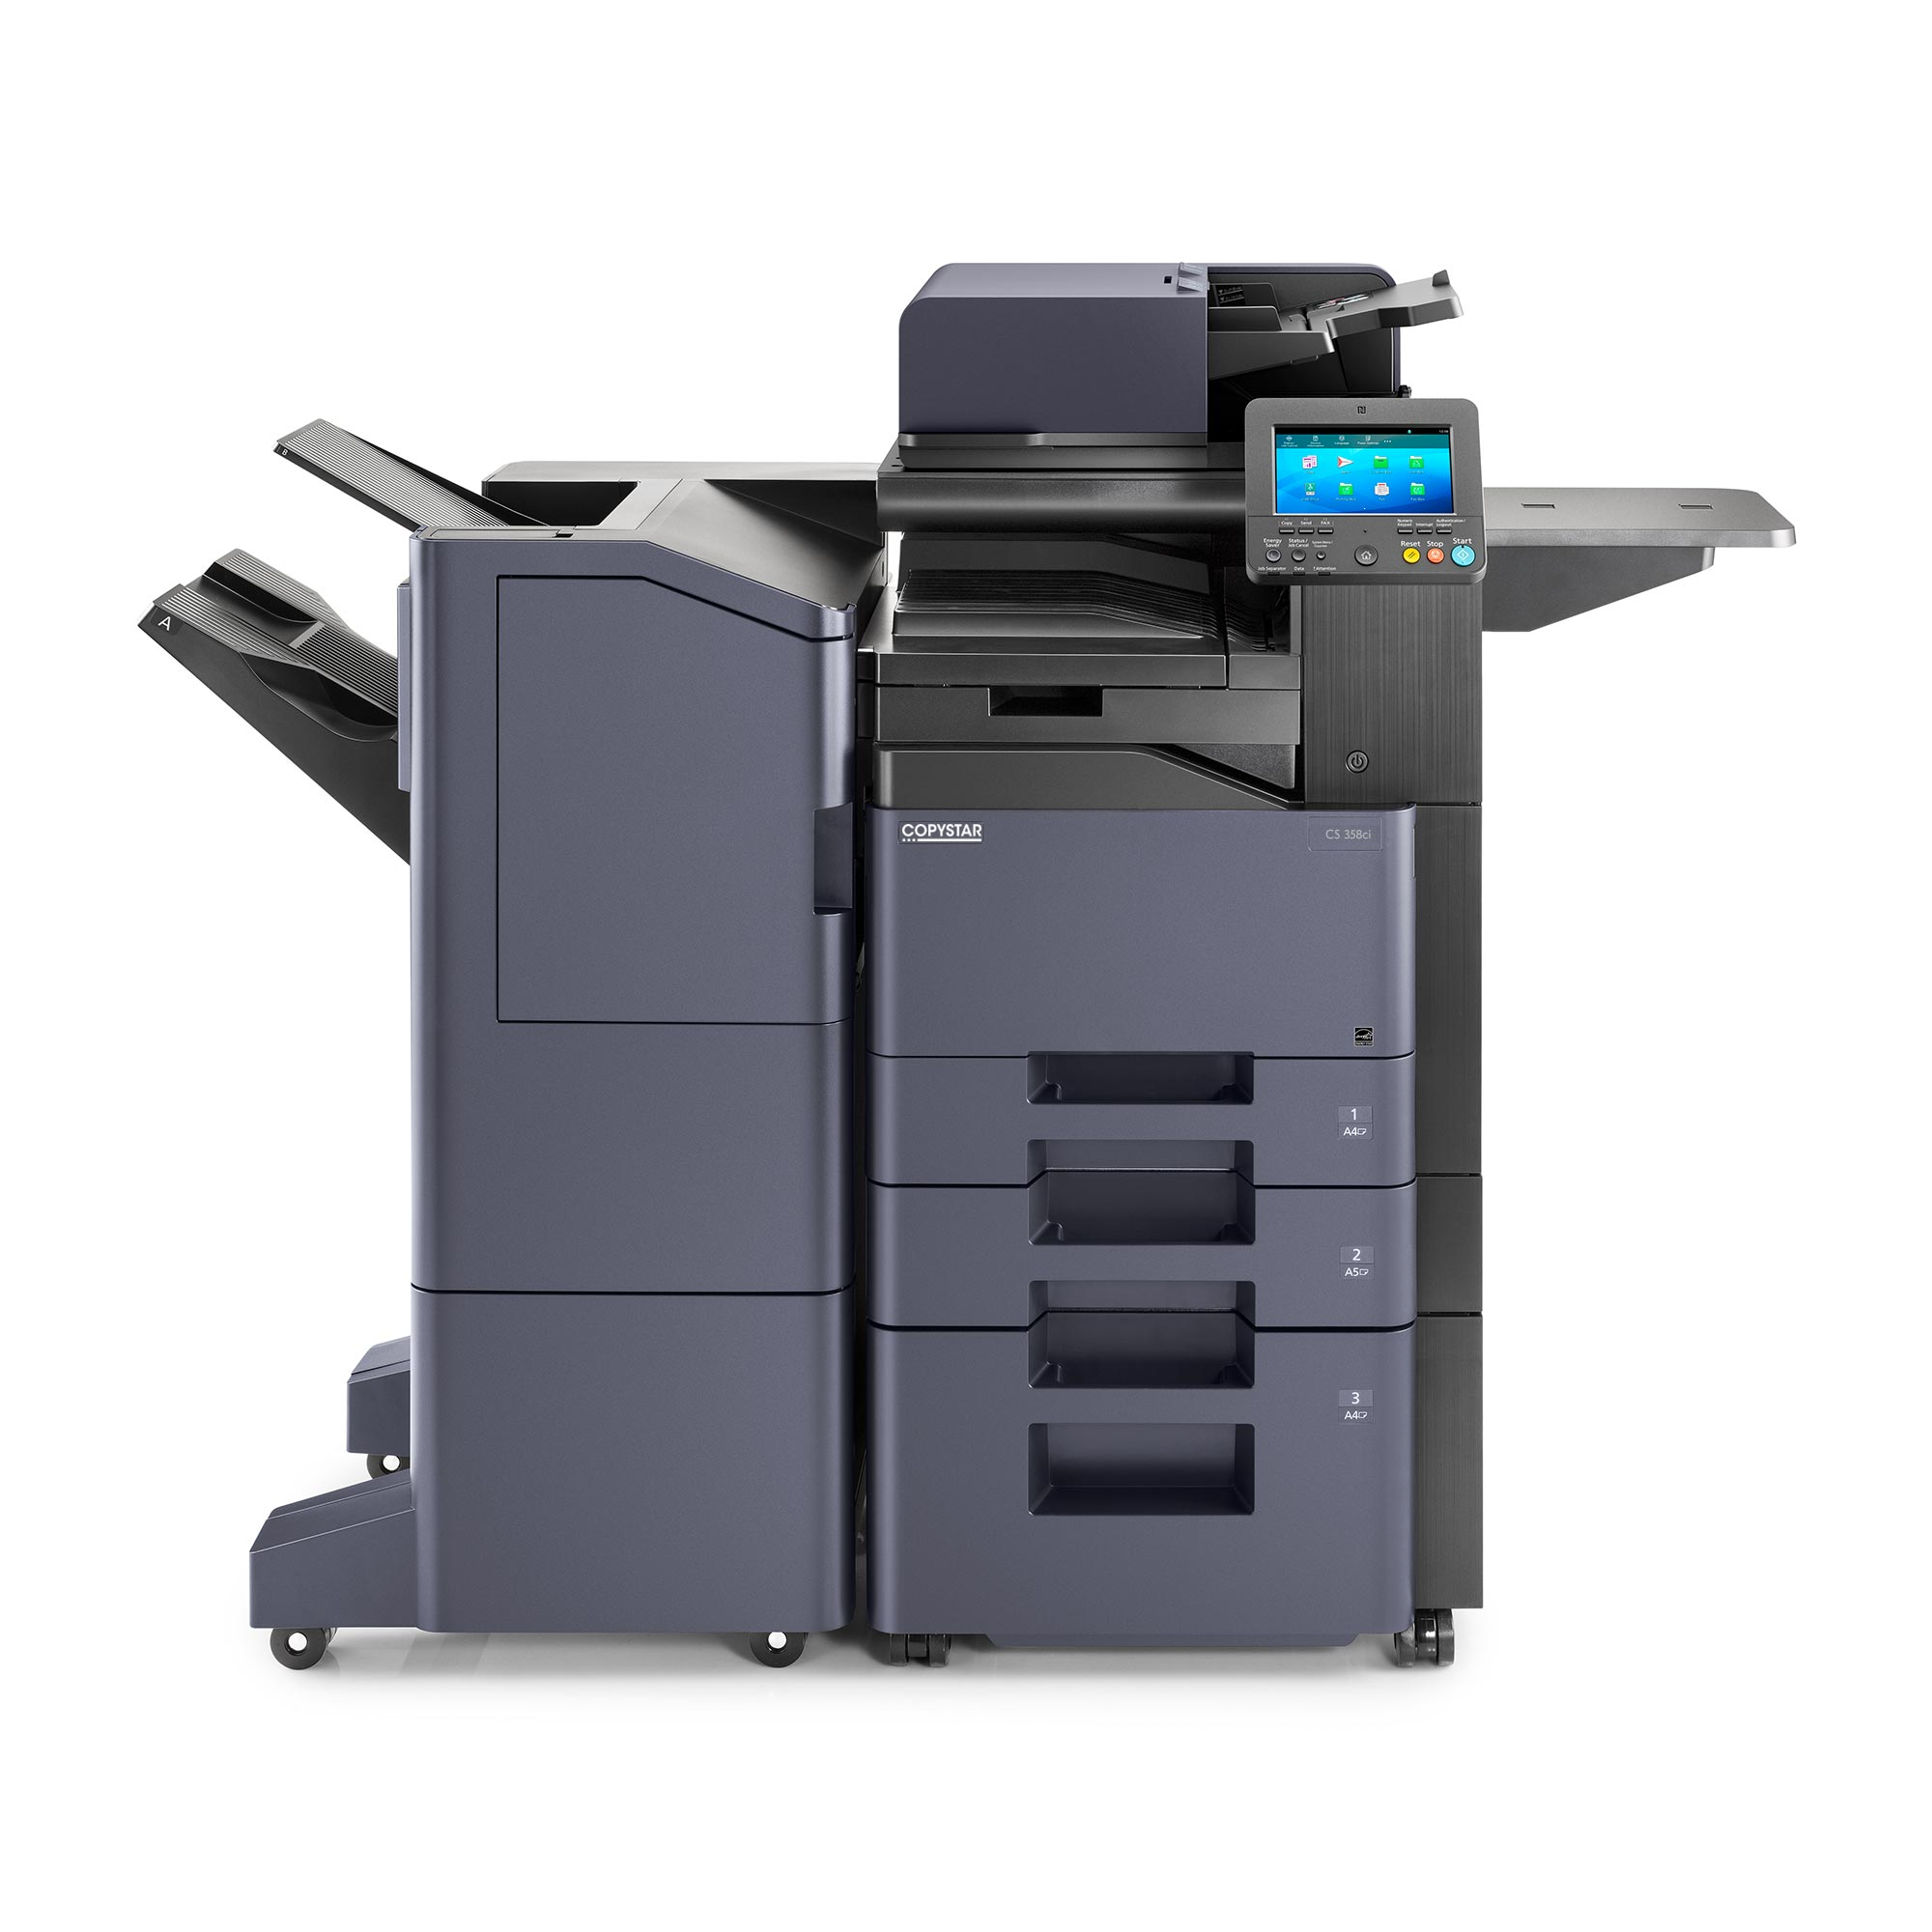 Kyocera CS_358ci Copier Lease 55372, 55378, 55379